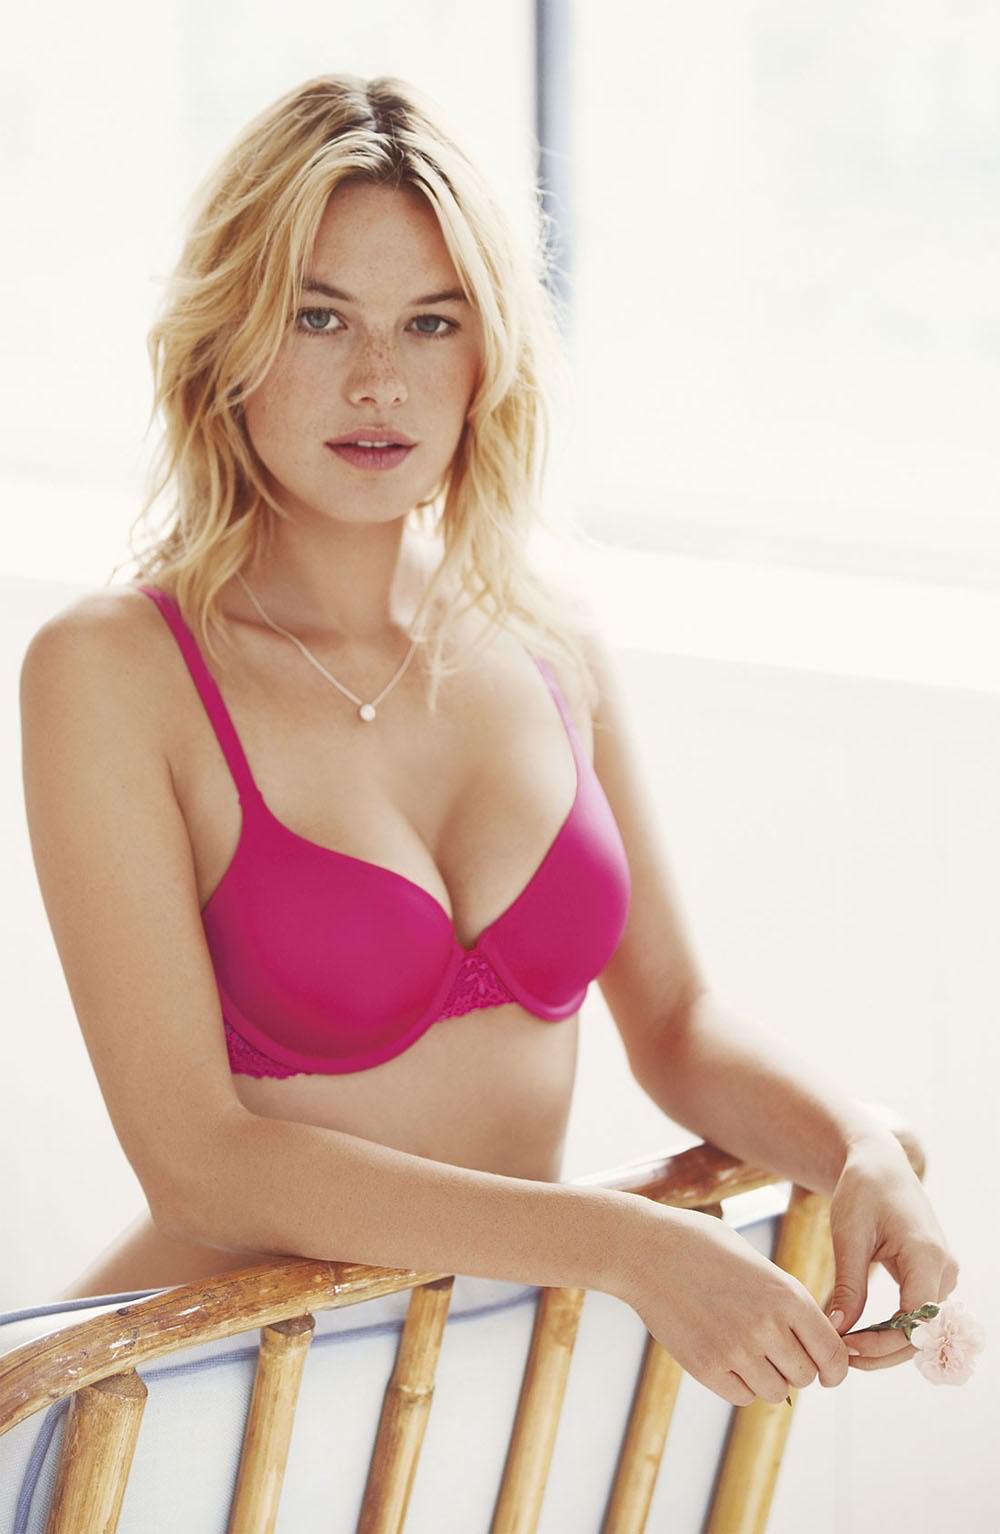 camille rowe1592950507